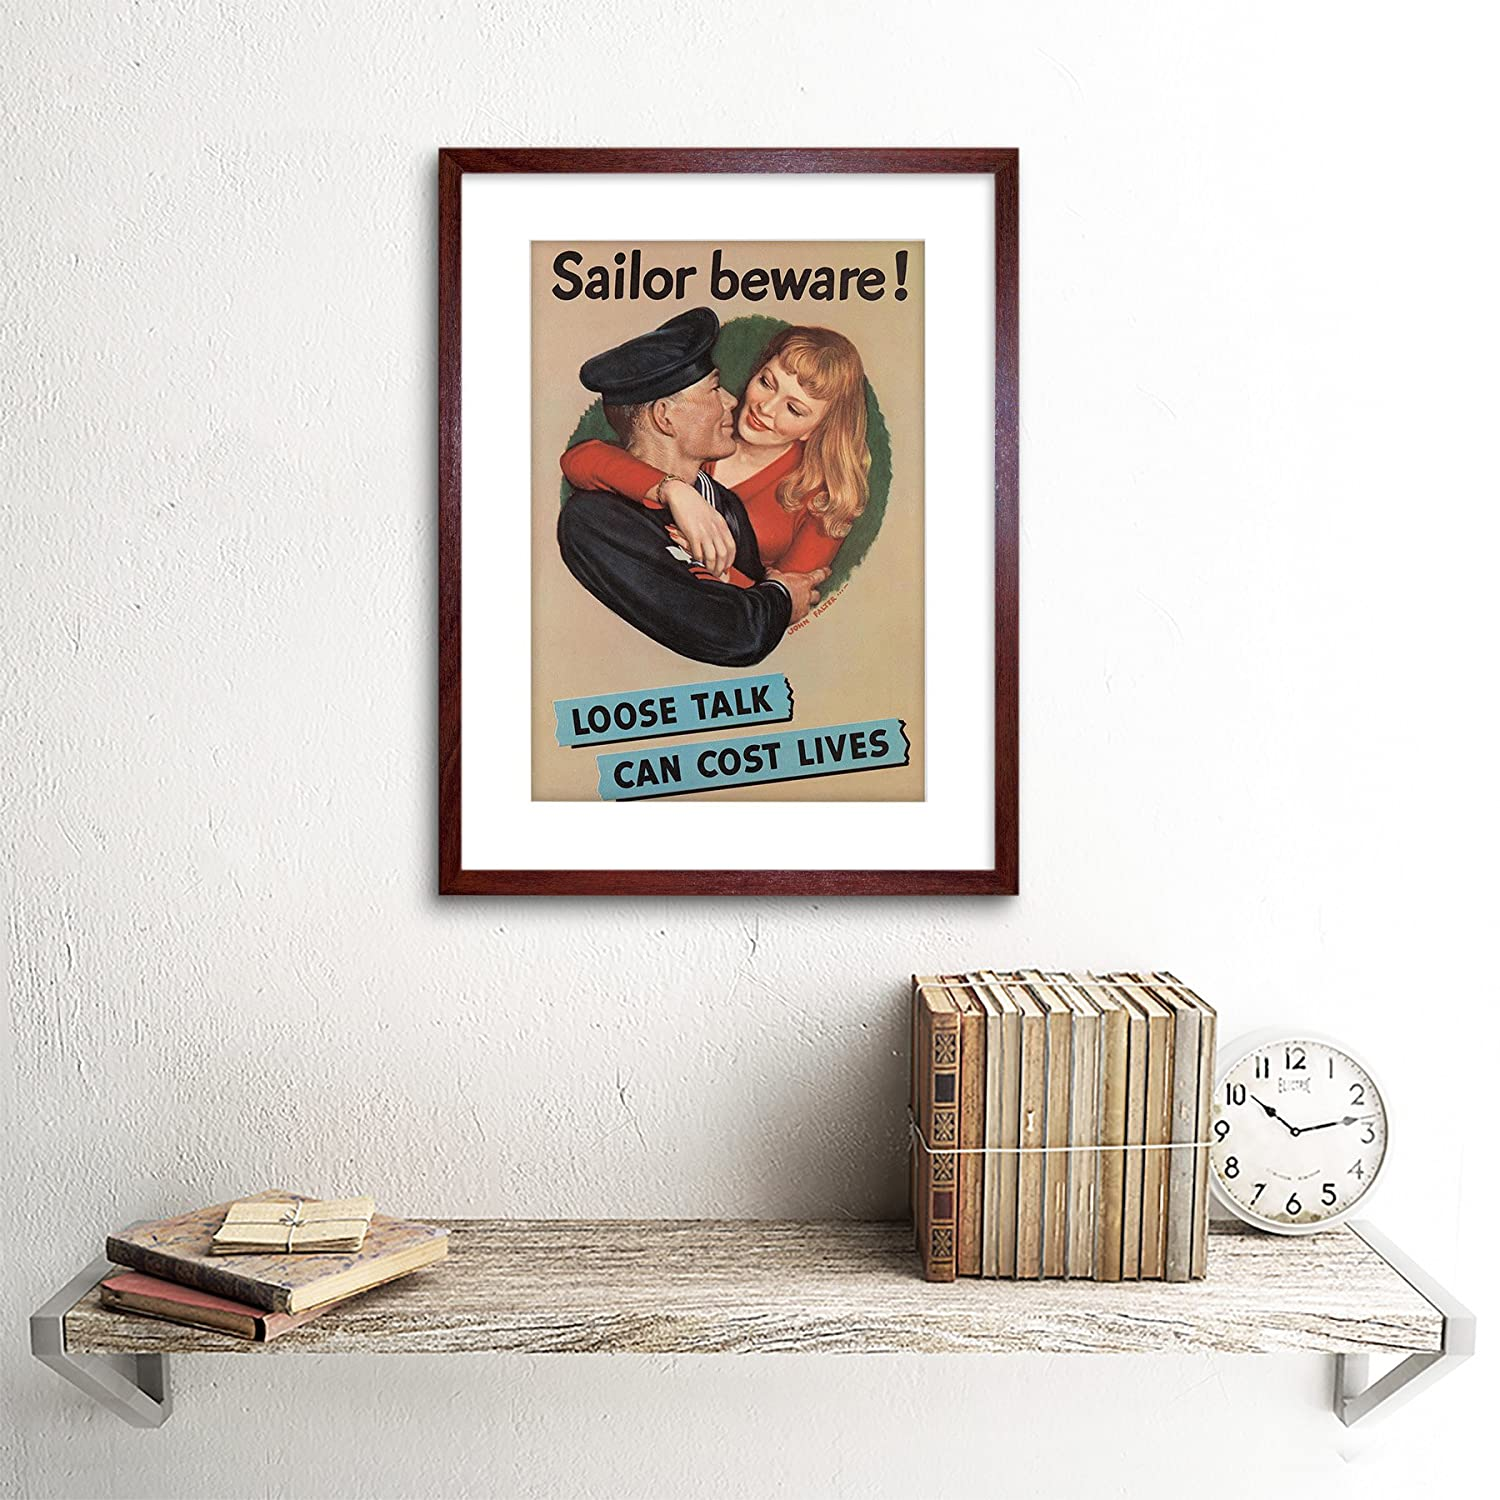 Amazon.com: WAR WWII LOOSE TALK COSTS LIVES SAILOR BEWARE FRAMED ART ...